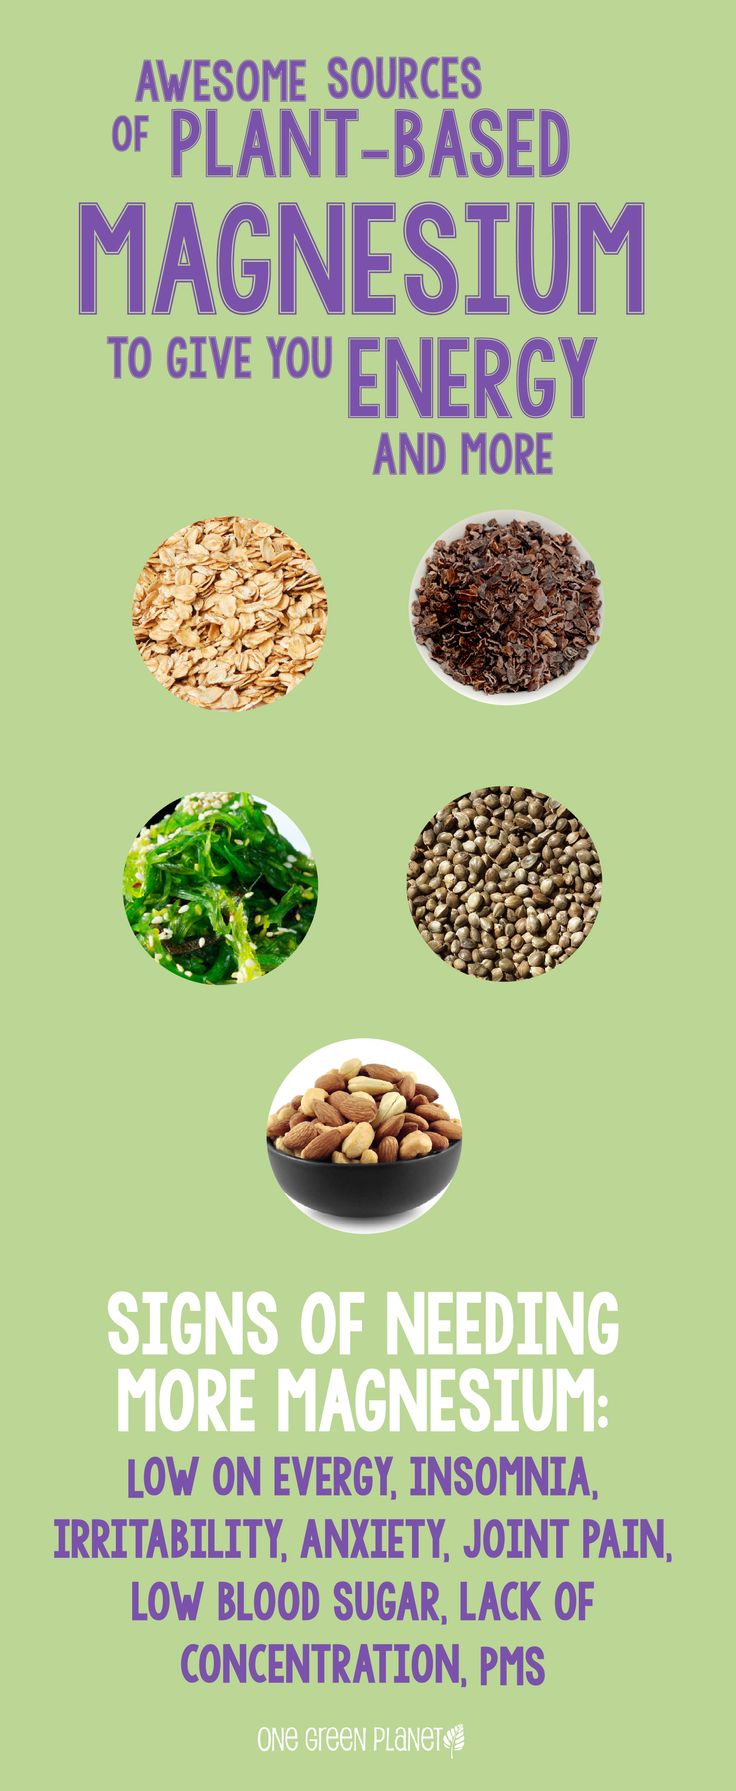 Natural plant based diet: magnesium for energy and more